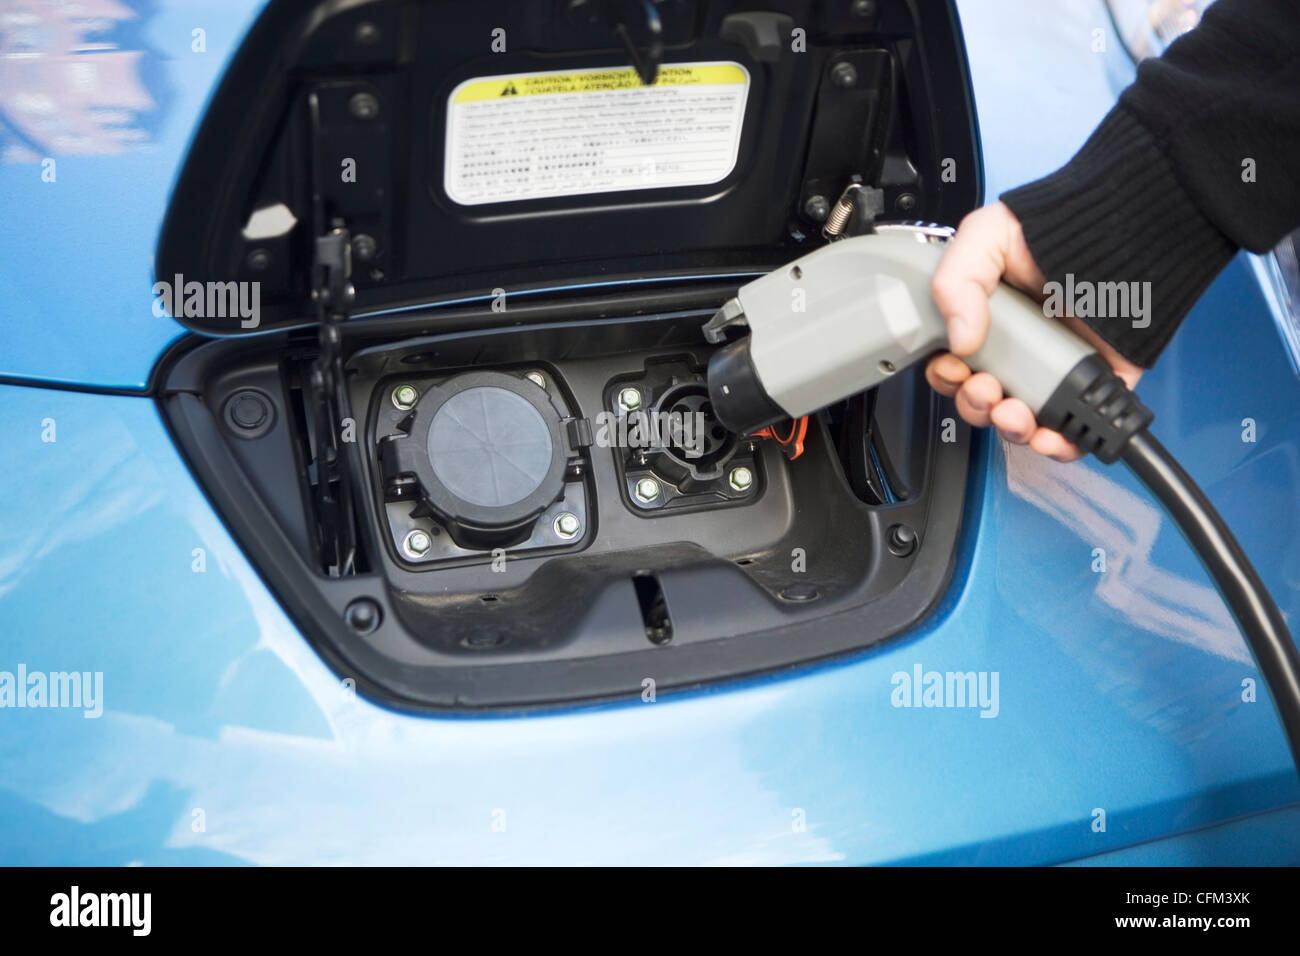 USA, New York State, New York City, close-up of man charging electric car - Stock Image